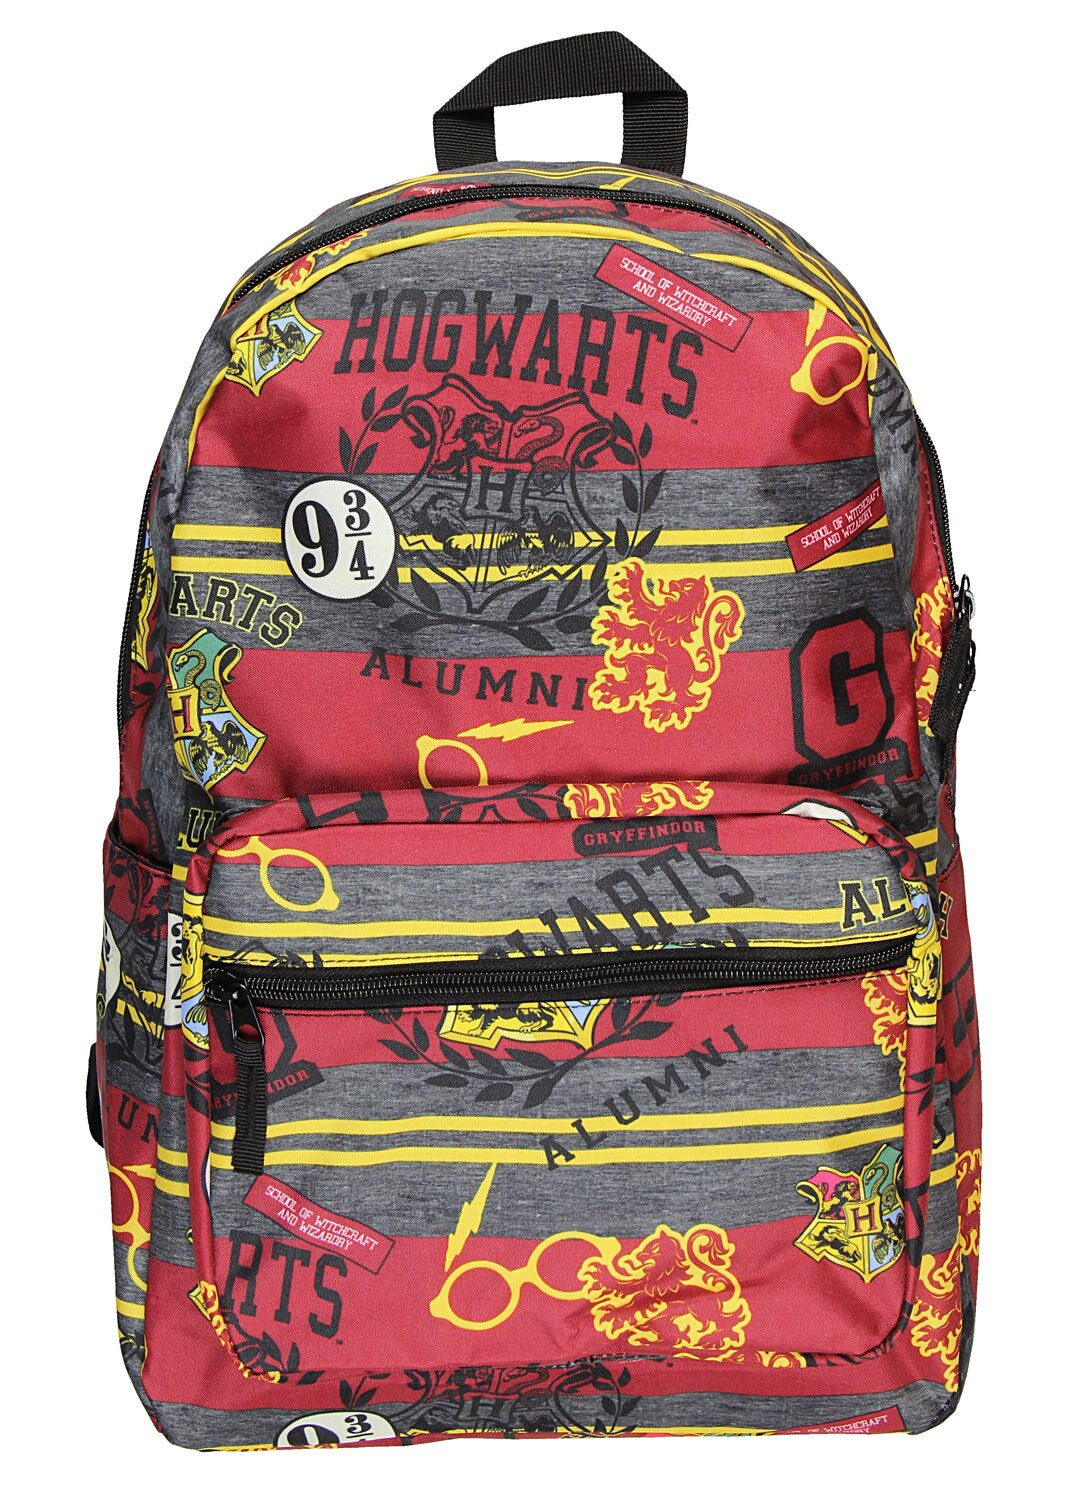 fc3bfb9e625b Harry Potter Hogwarts School of Witchcraft and Wizardry Alumni Patch  Gryffindor Allover Print Backpack Book Bag